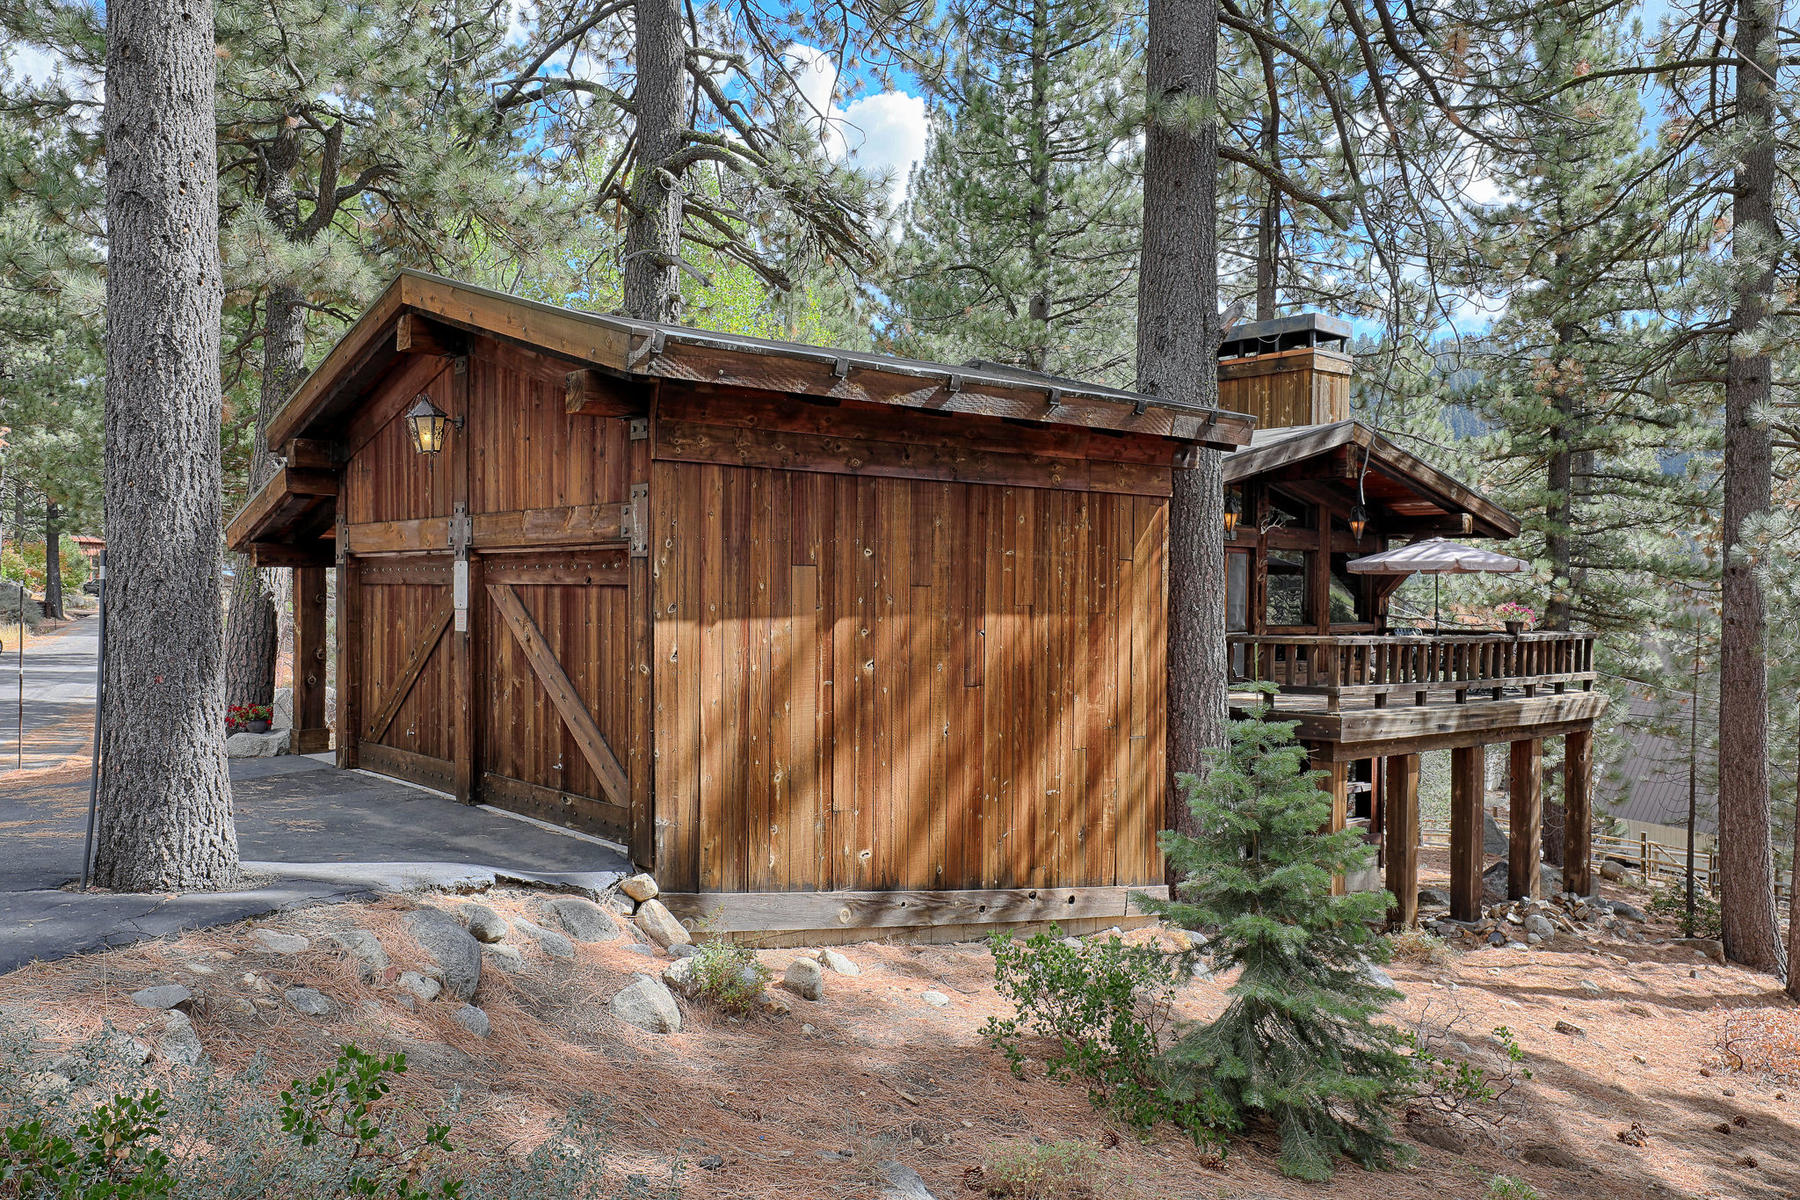 Additional photo for property listing at 1549 Christy Lane, Olympic Valley, CA 1549  Christy Lane Olympic Valley, California 96146 United States